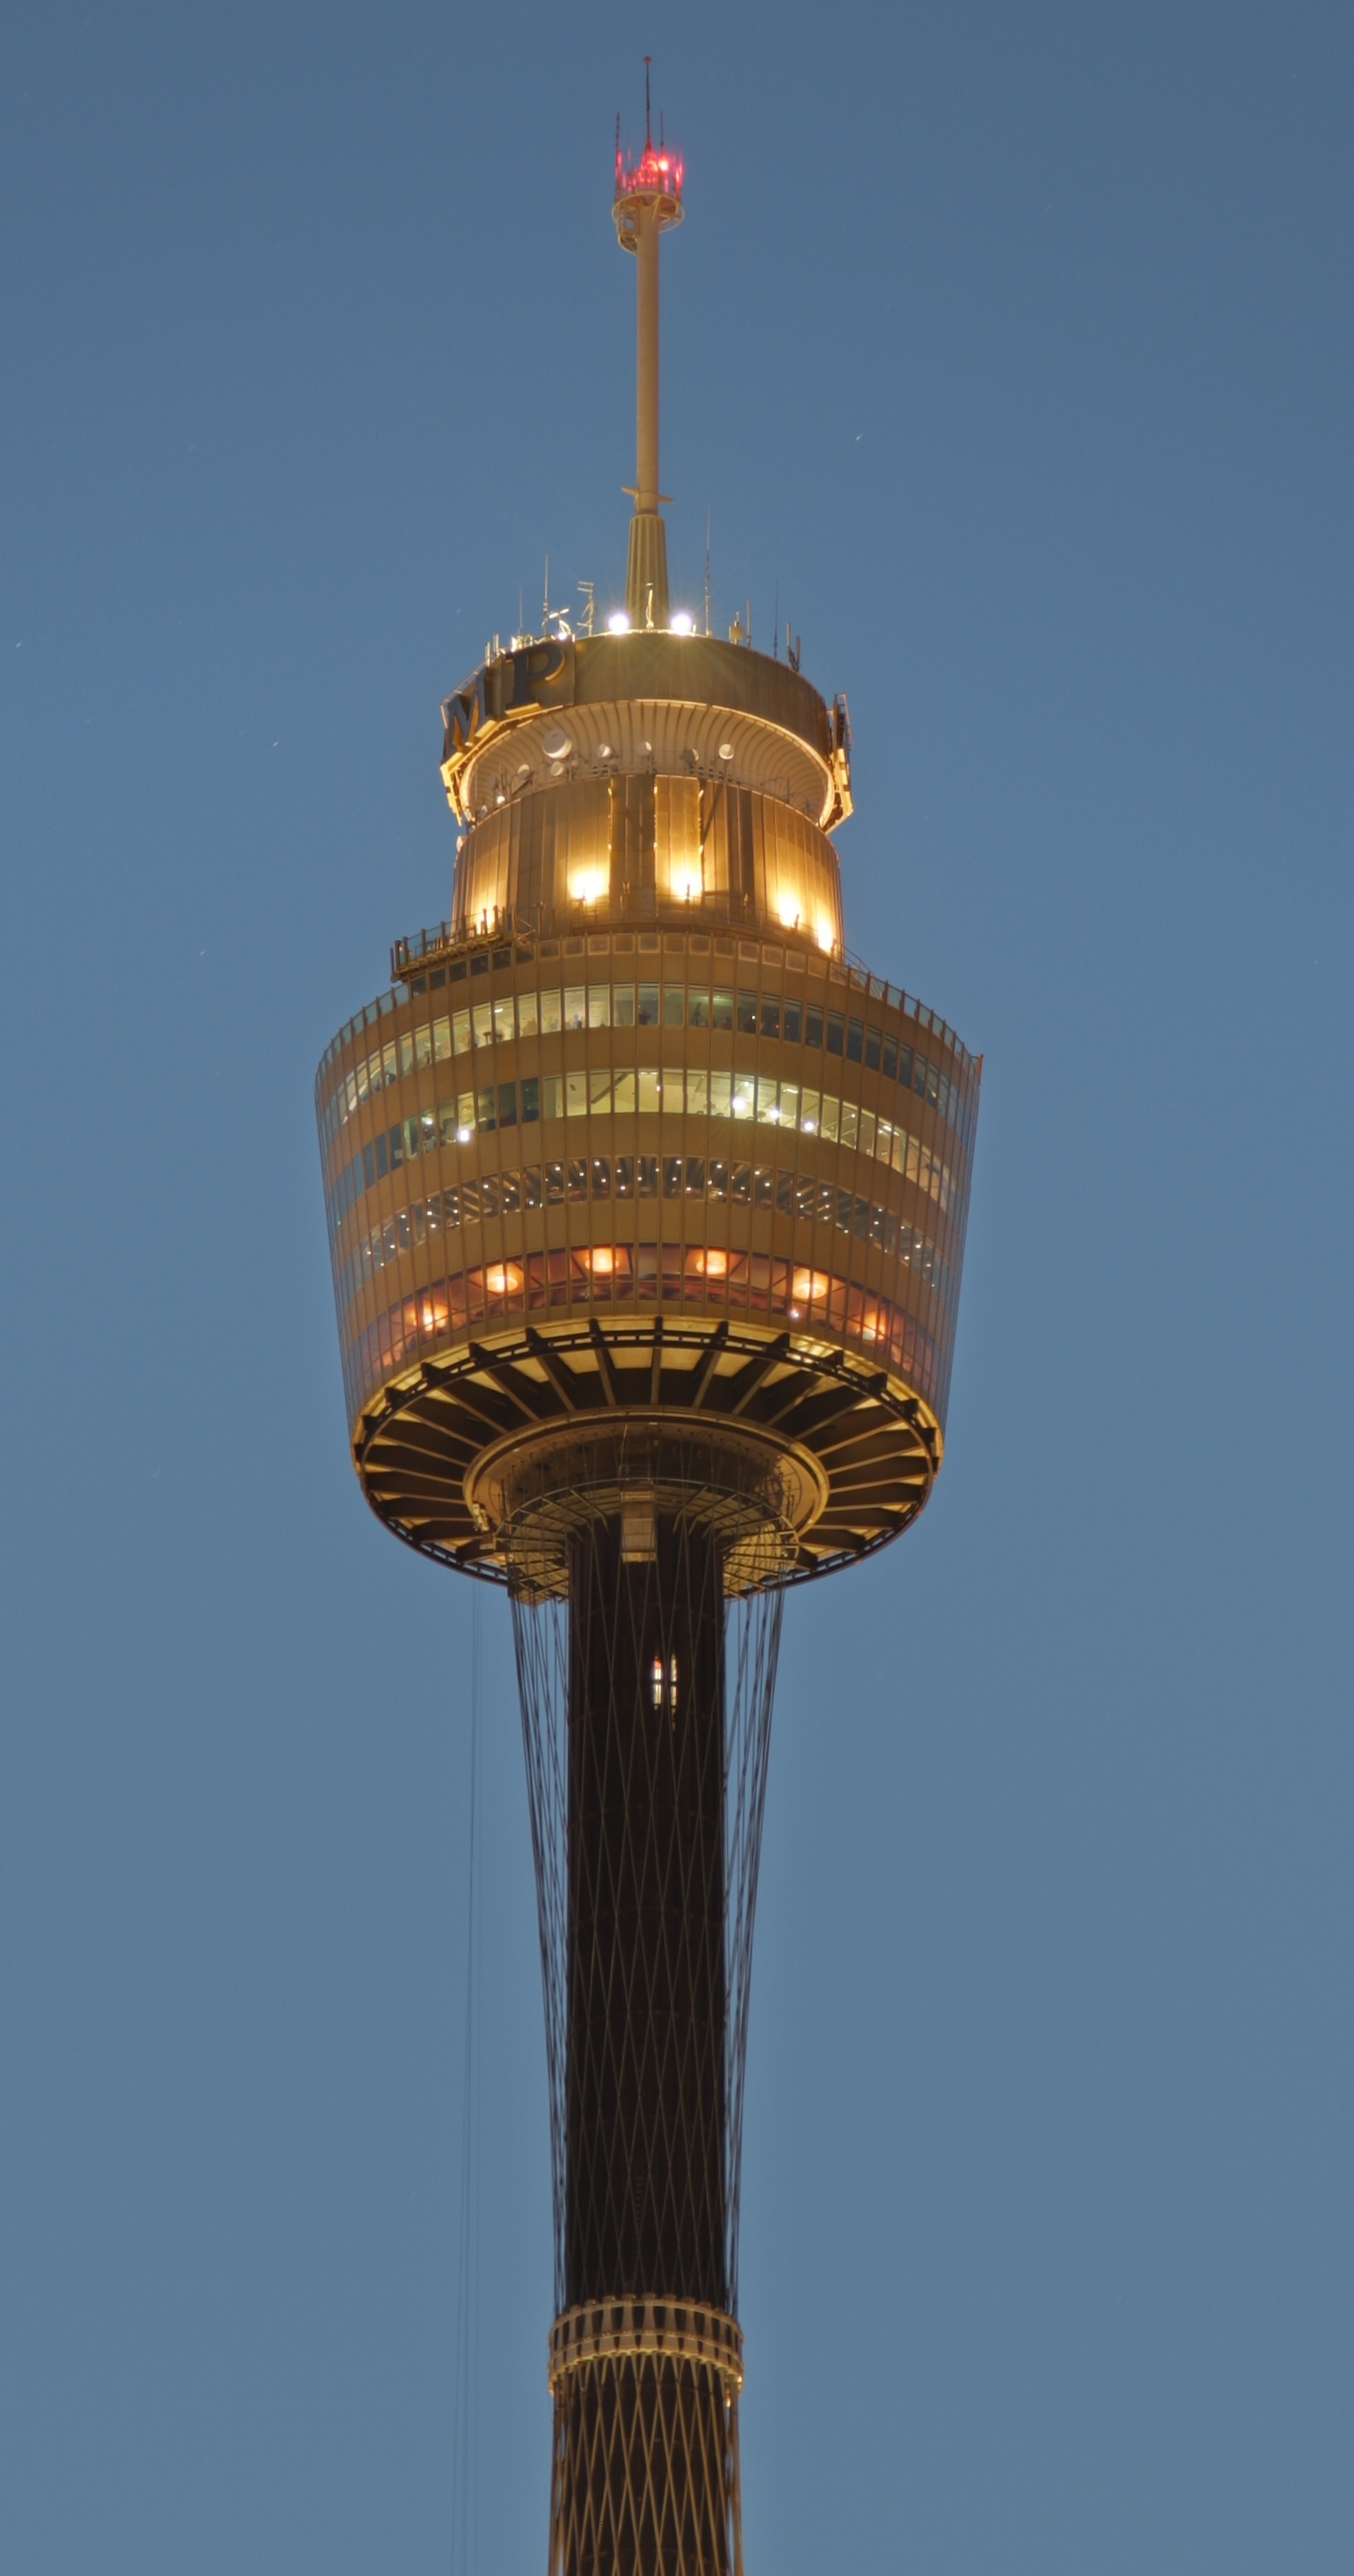 File:Sydney tower sunset.jpg - Wikimedia Commons